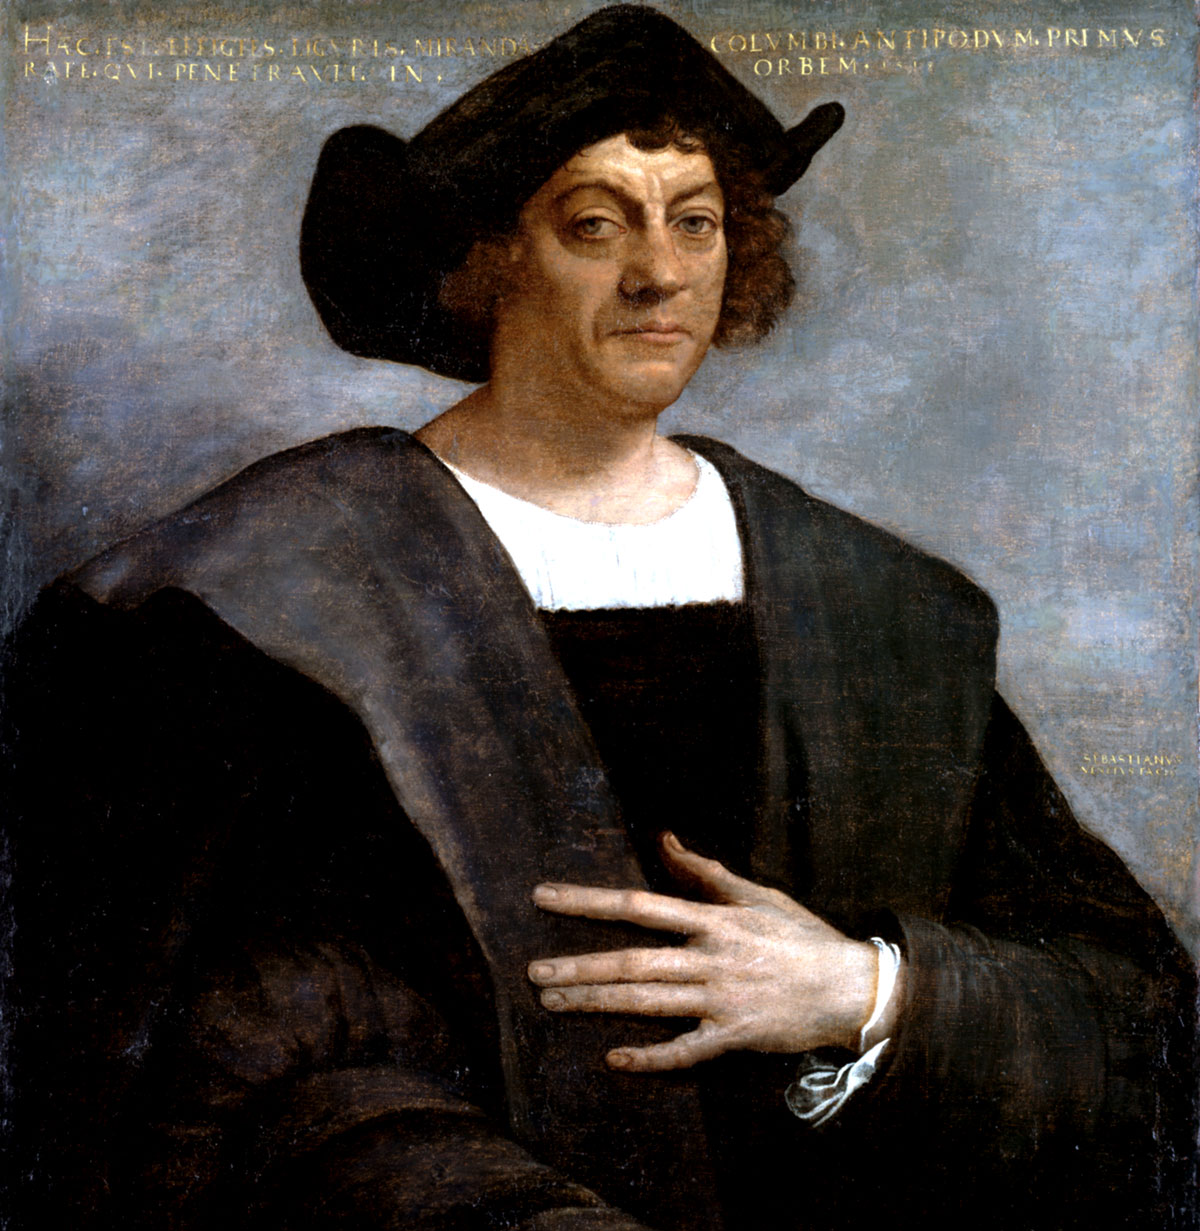 A posthumous portrait of Christopher Columbus by Sebastiano del Piombo, 1519